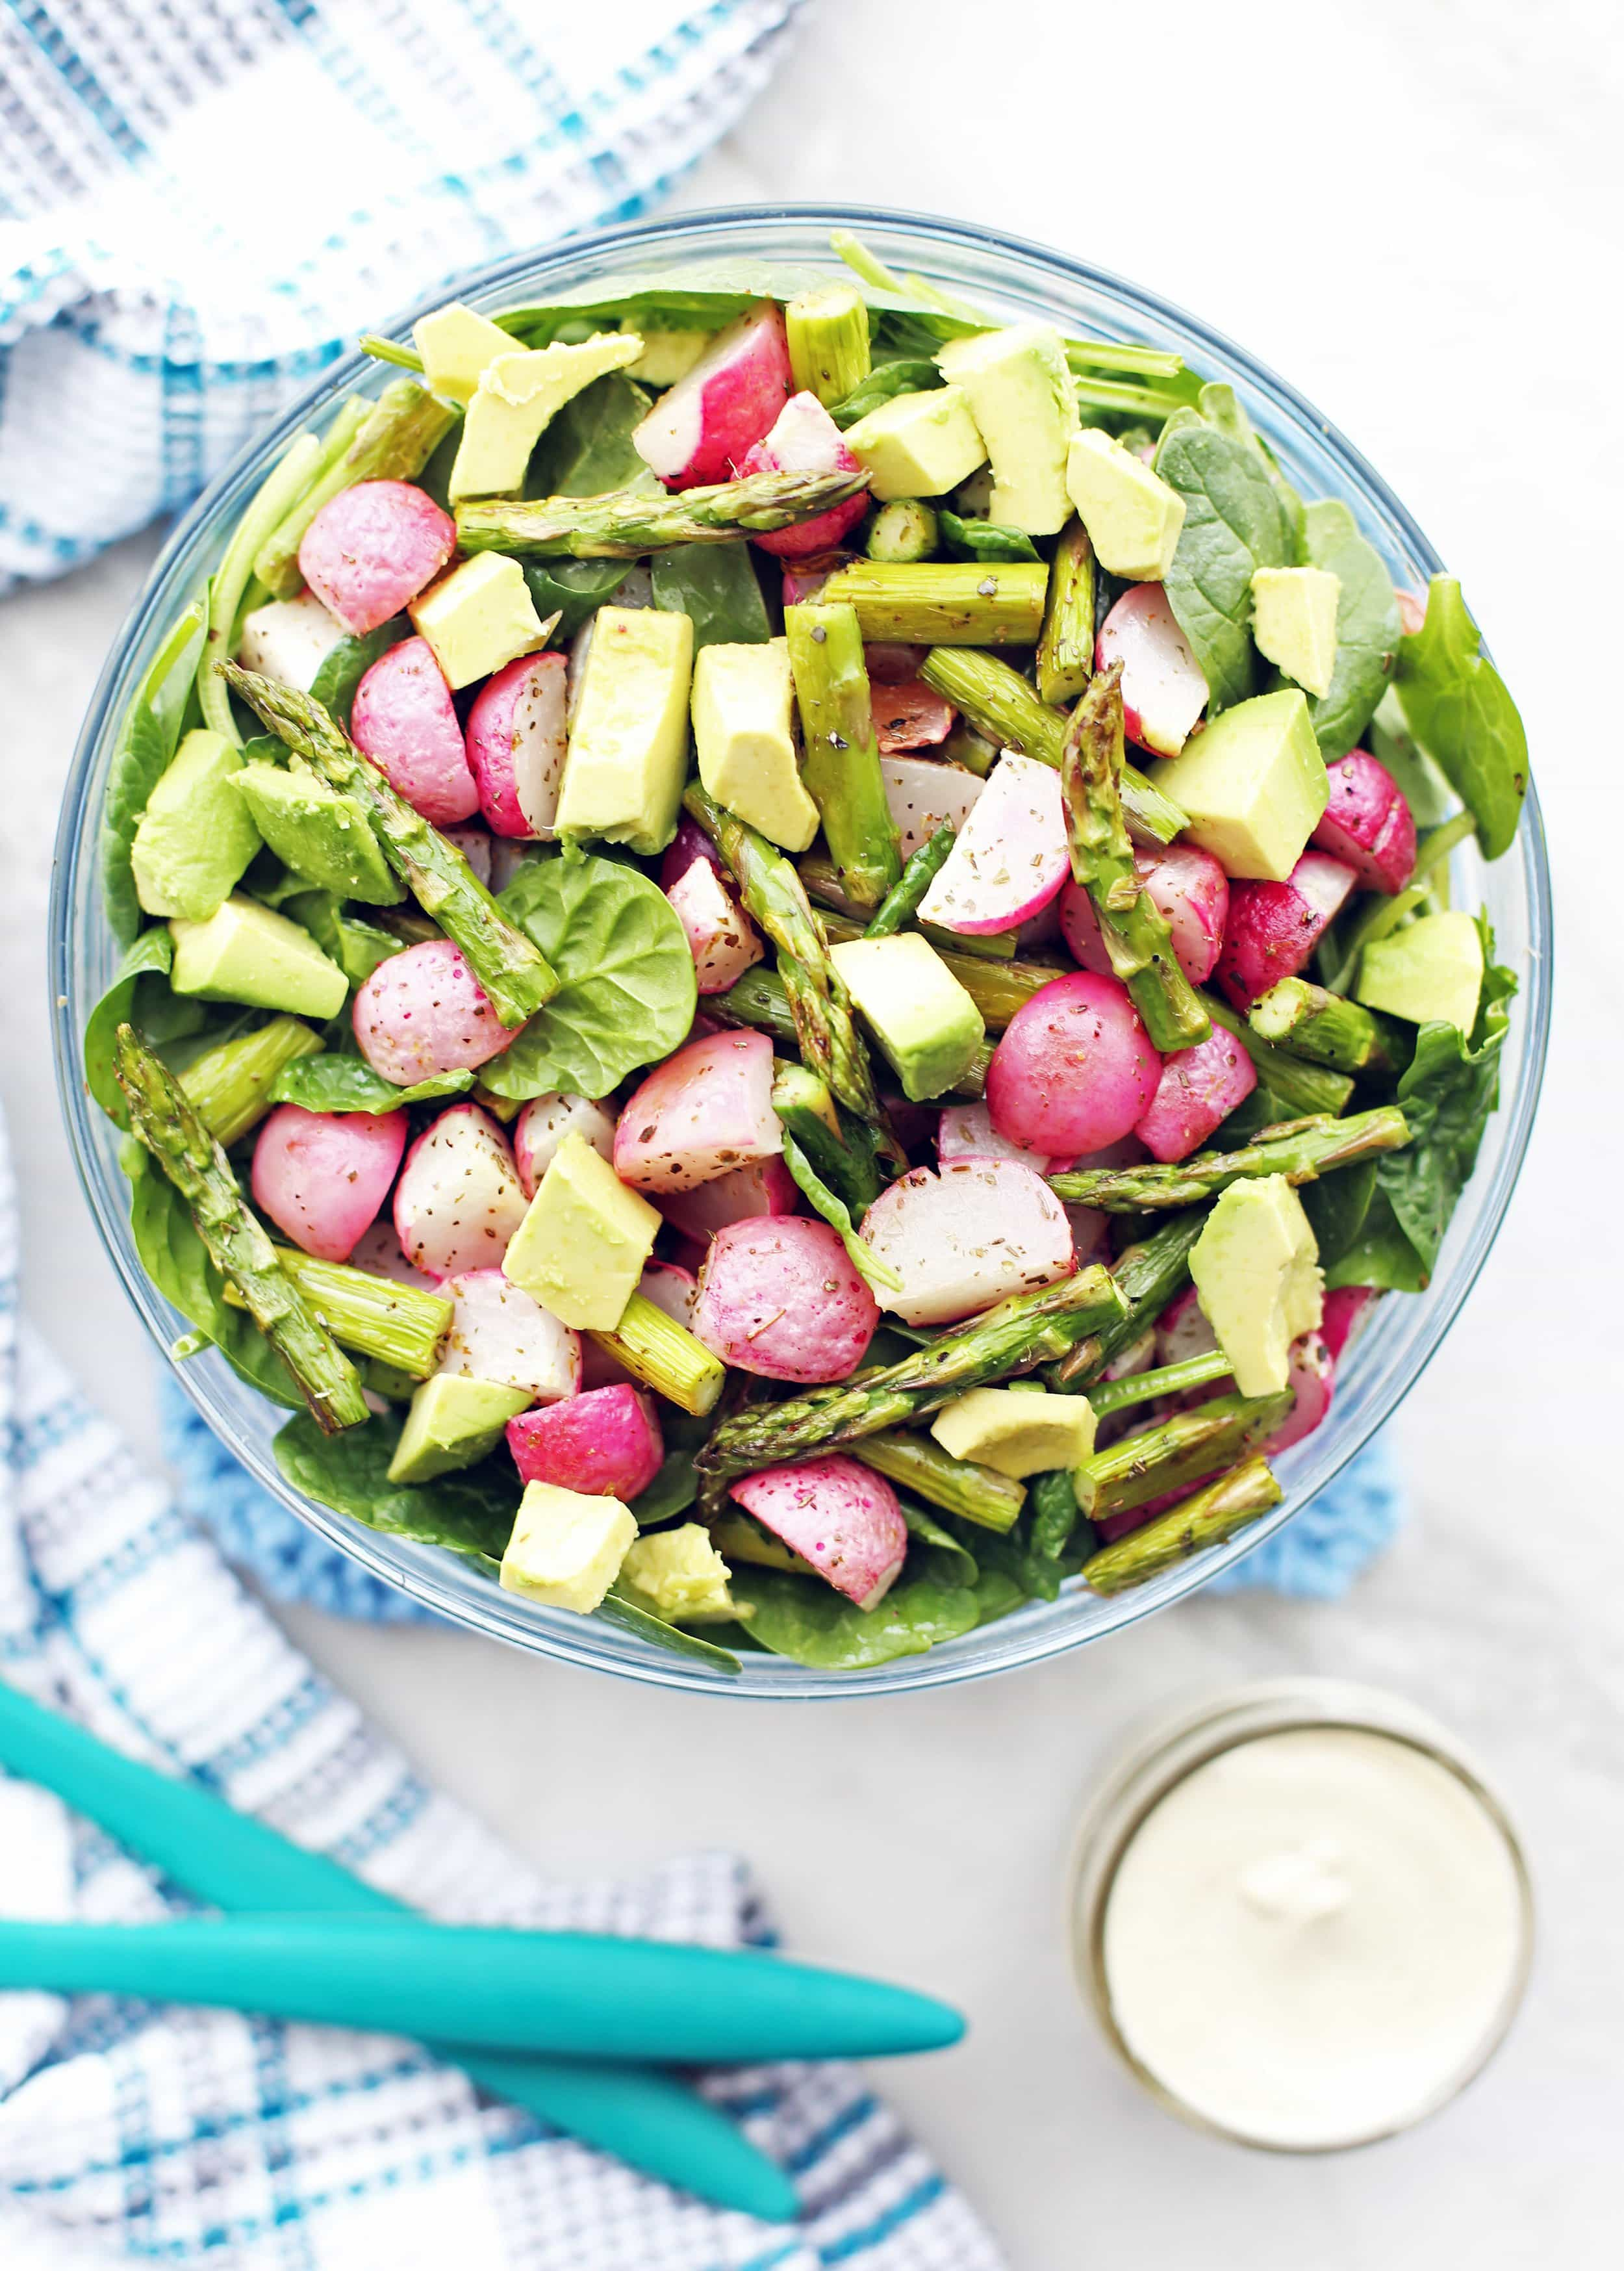 Overhead view of Roasted Asparagus and Radish Salad with spinach and avocado in a large glass bowl.